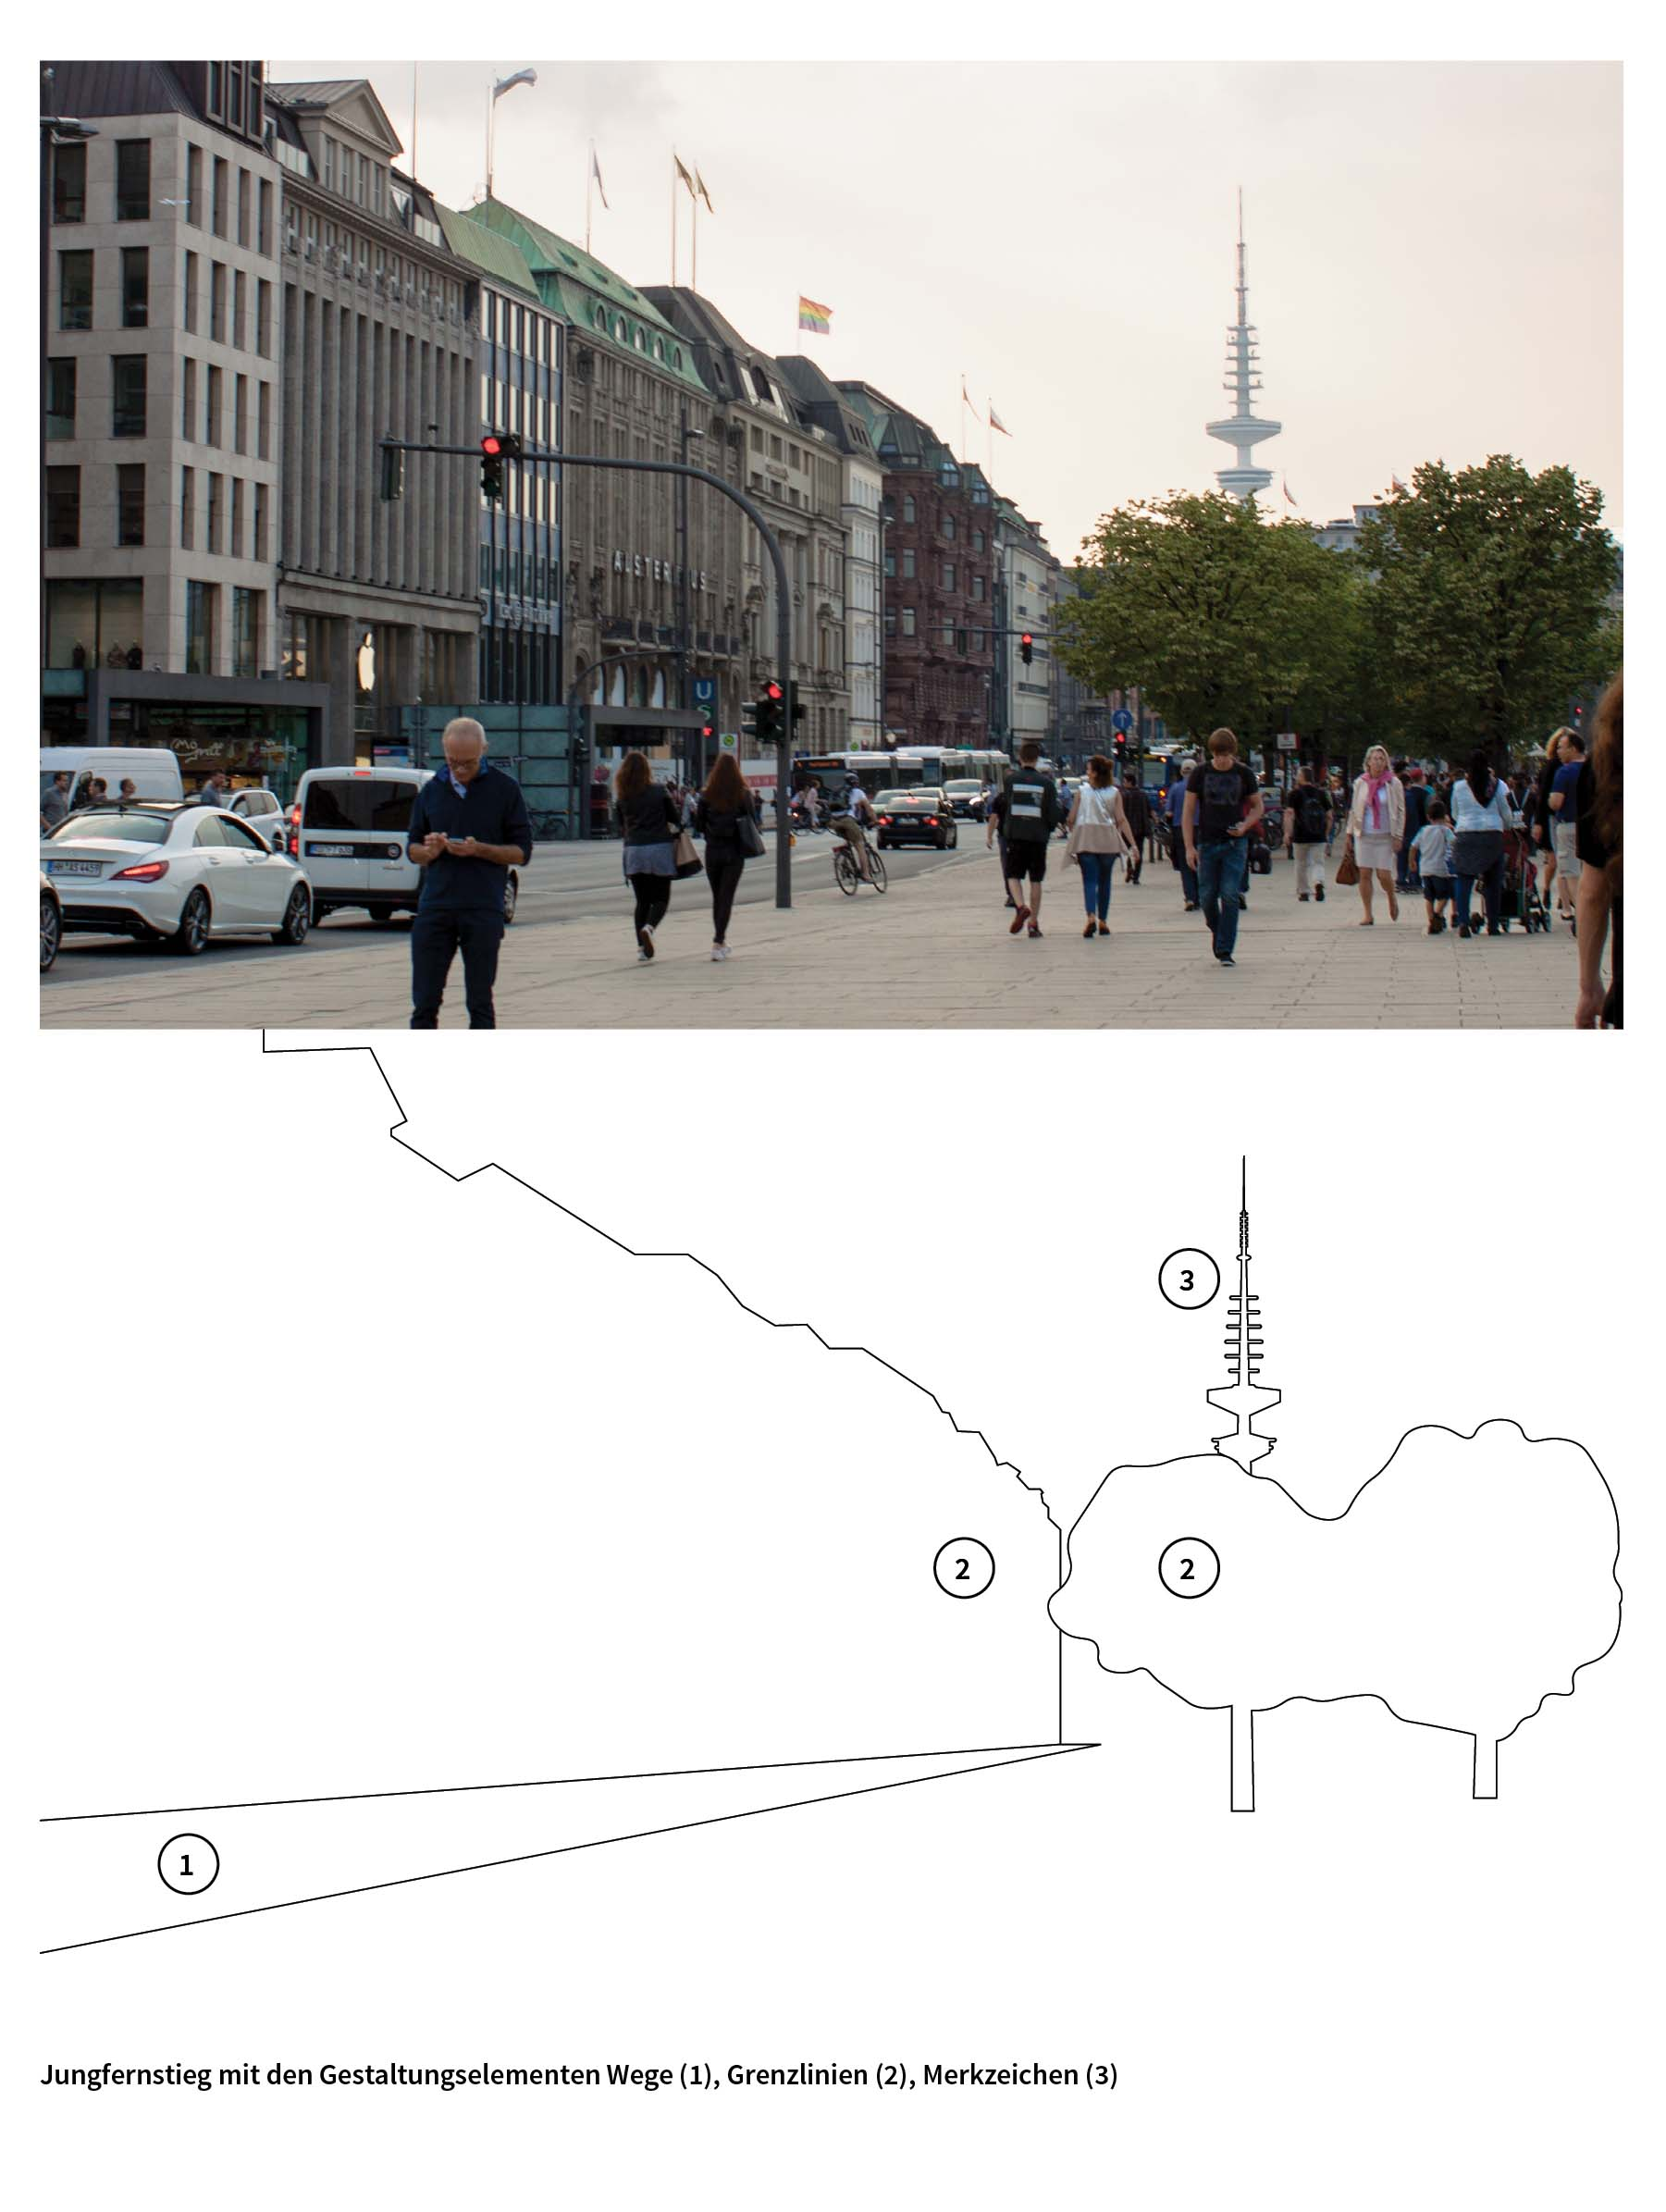 http://ud.hcu-hamburg.de/projects/master-theses/interface-der-stadt-leit-und-orientierungssysteme-in-hamburg-am-beispiel-jungfernstieg-interface-of-the-city-wayfinding-and-orientation-systems-in-hamburg-using-the-example-of-jungfernstieg-2016